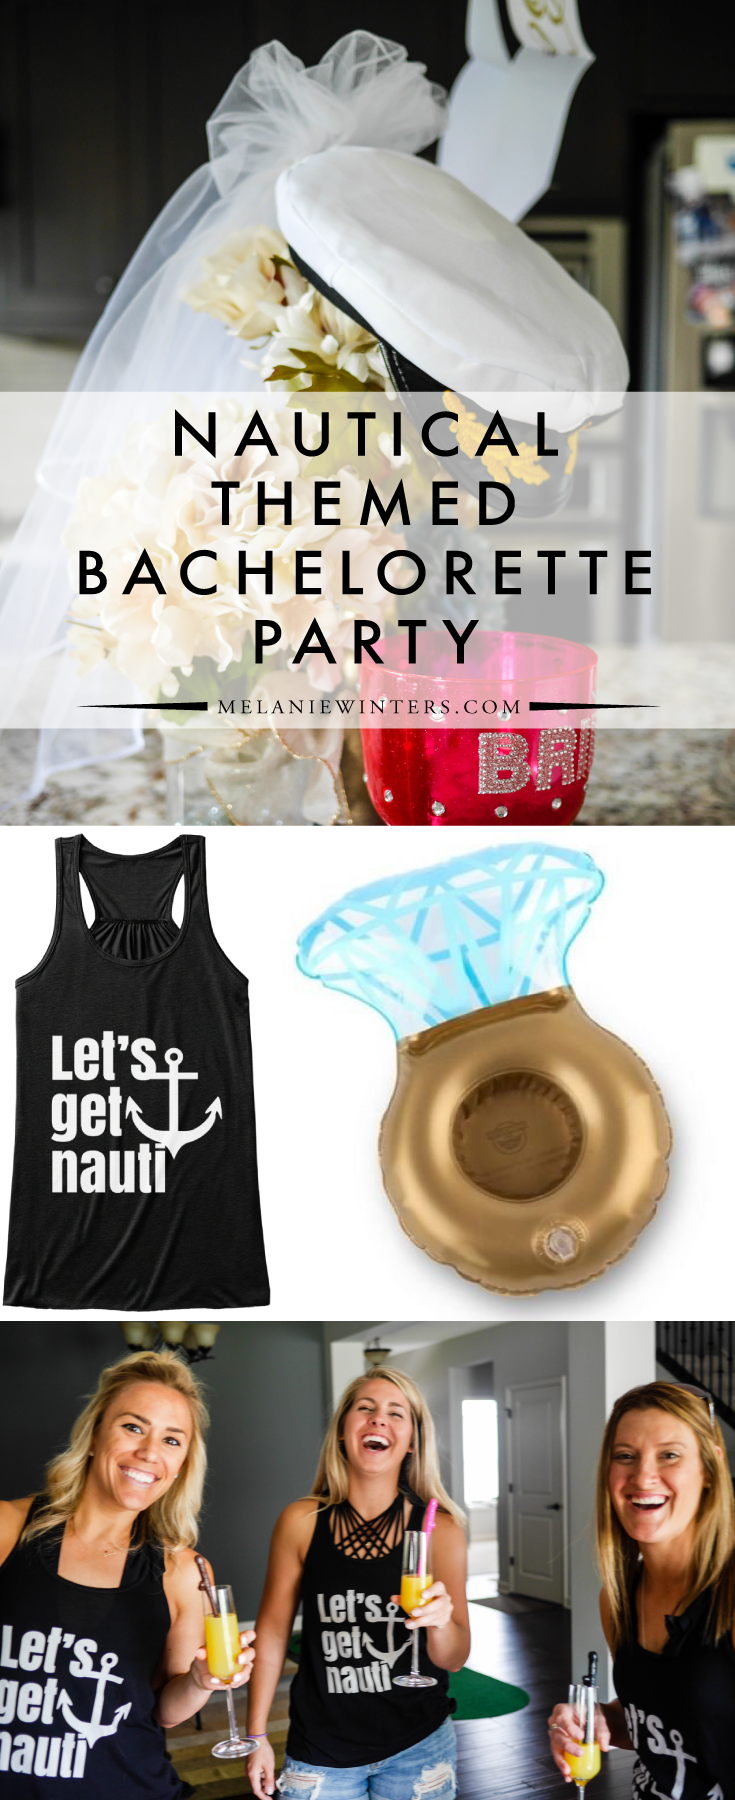 A few key accessories are all it takes to execute a nautical themed bachelorette party. Check out our favorites!